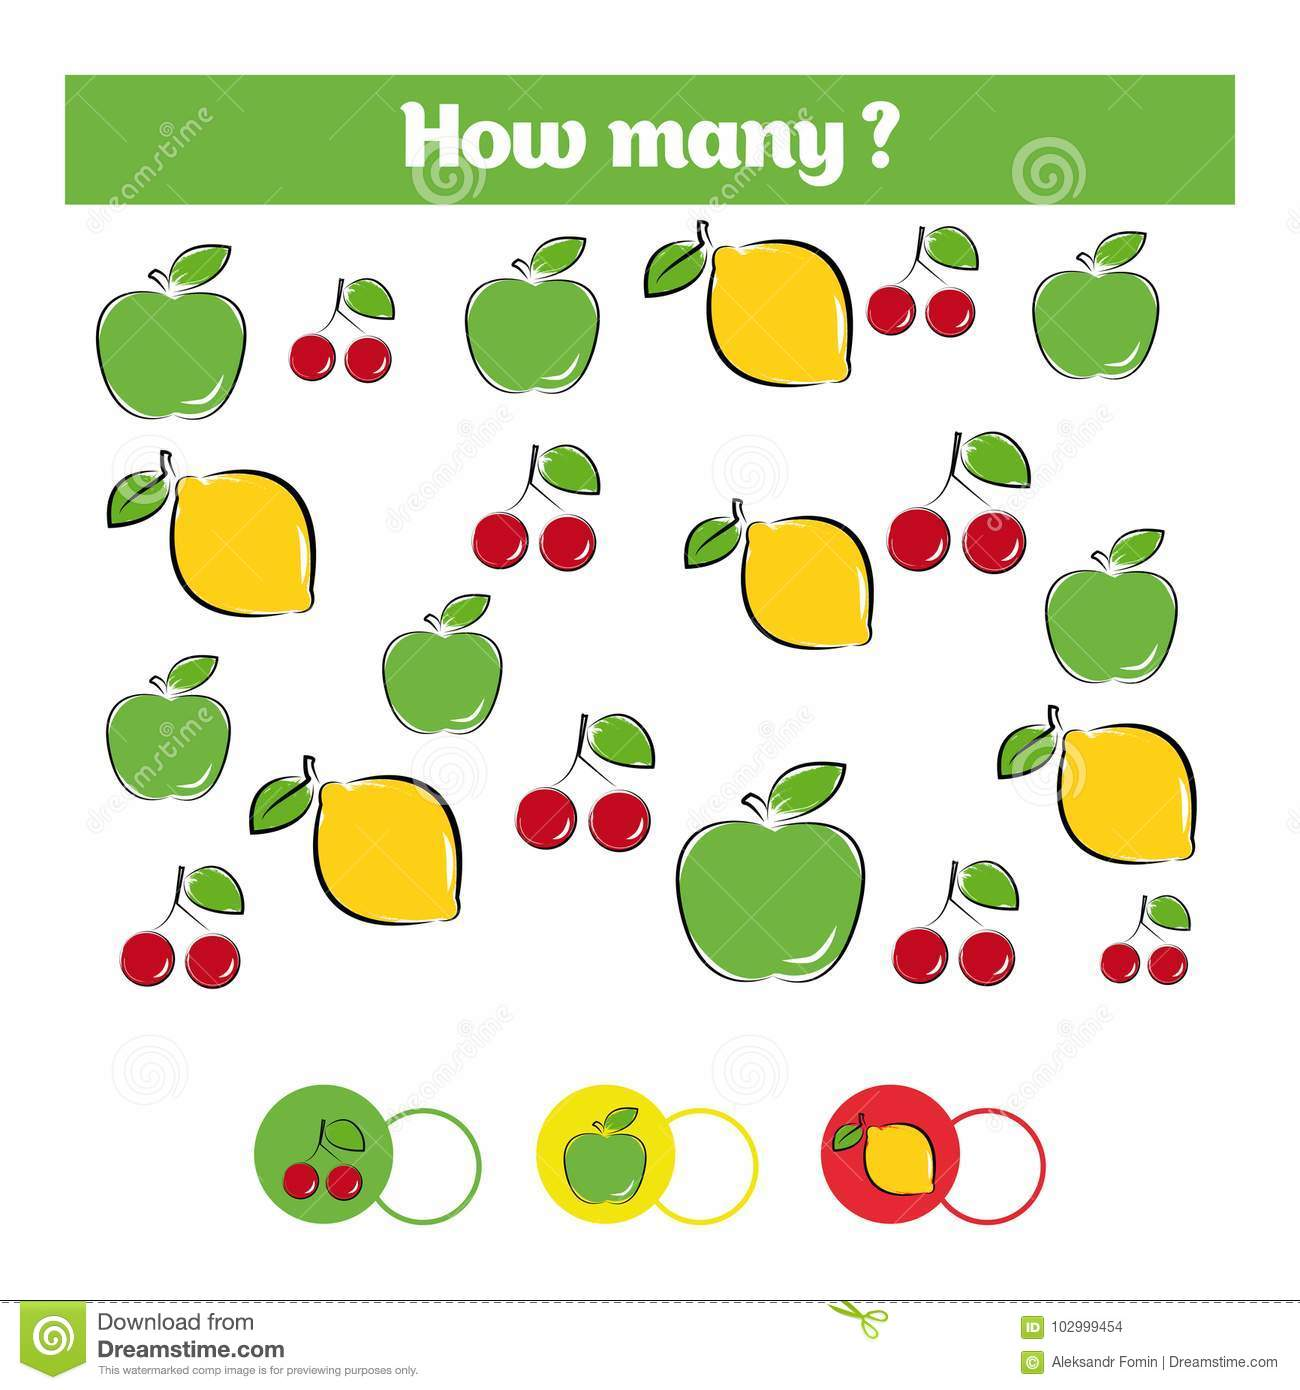 Counting Educational Children Game Kids Activity Sheet How Many Objects Task Learning